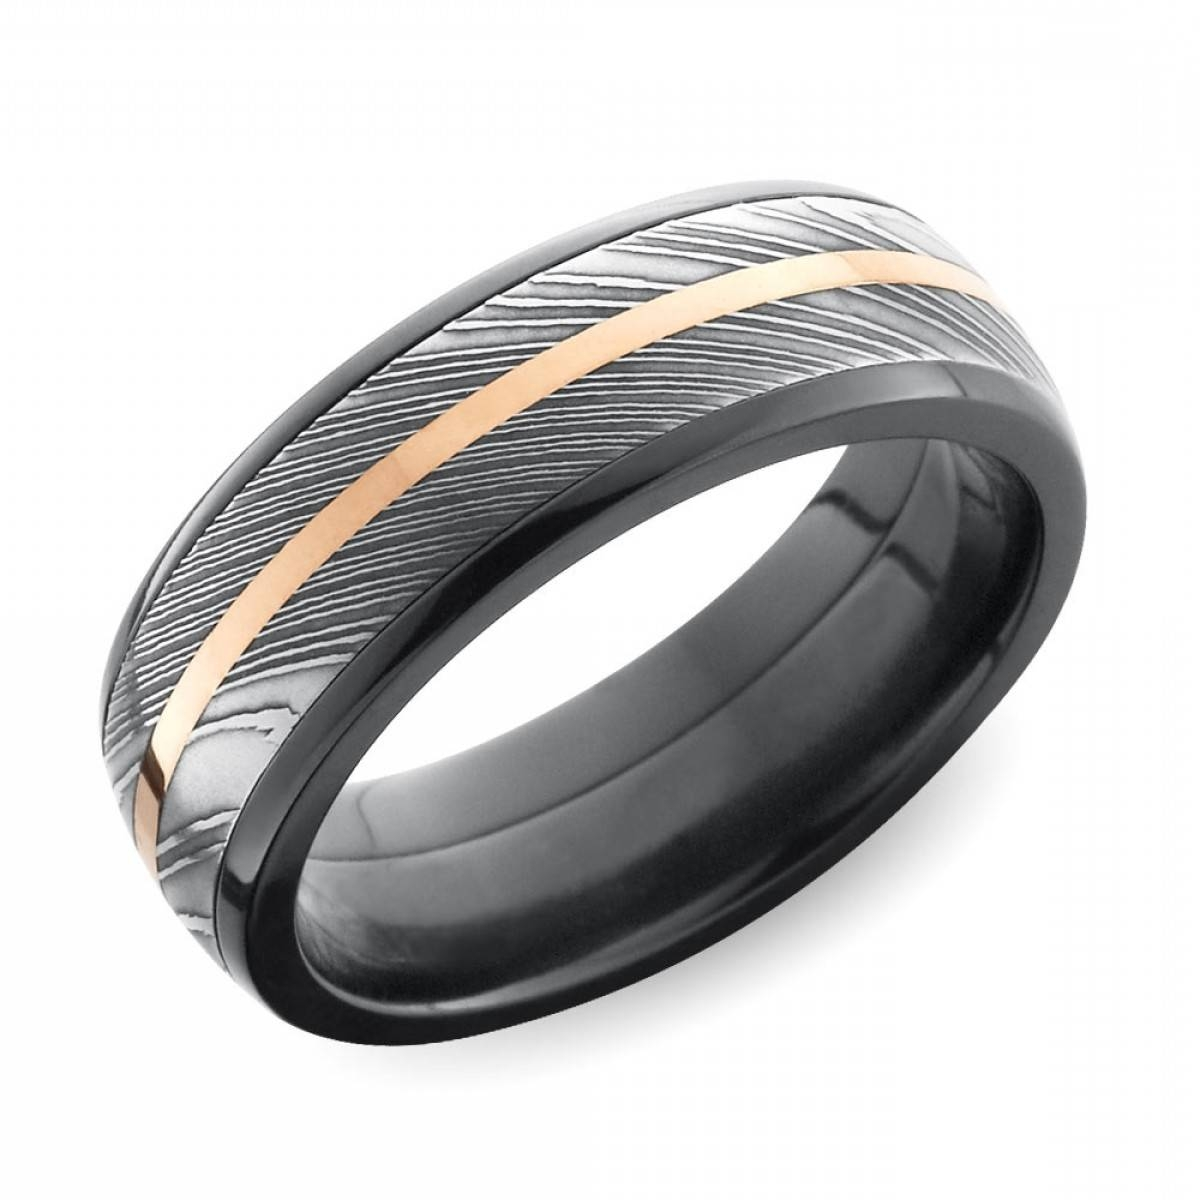 Cool Mens Wedding Rings That Defy Tradition | Oblacoder Inside Cool Mens Wedding Bands (View 10 of 15)